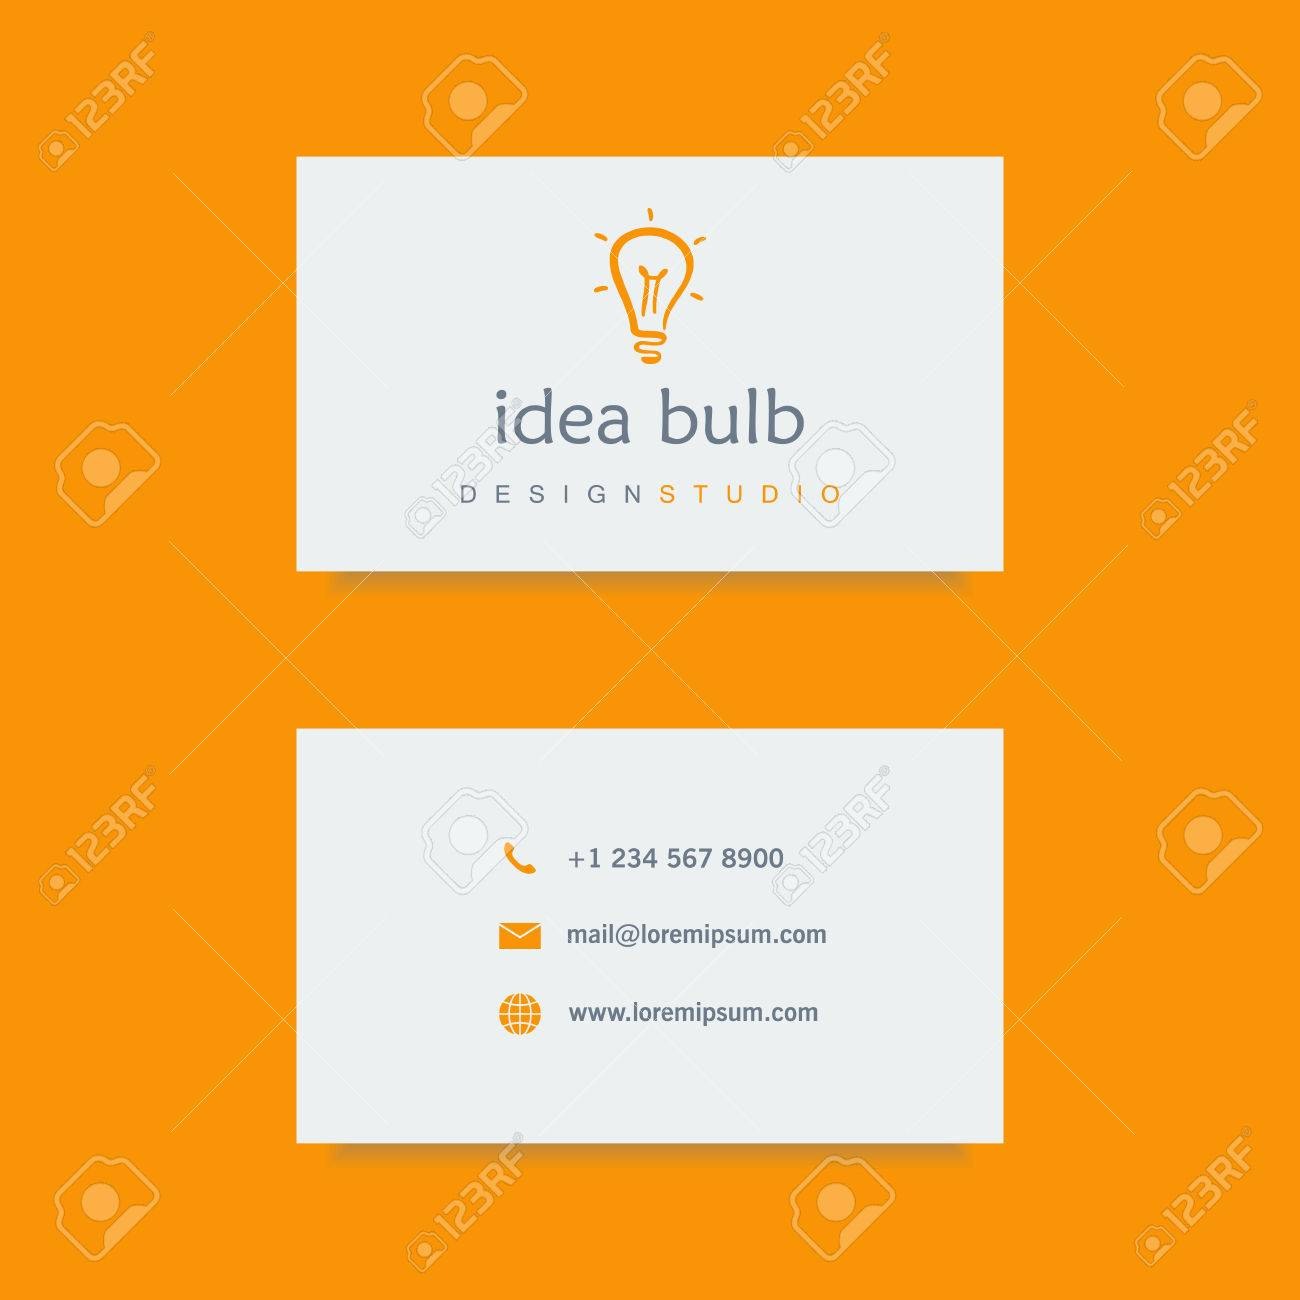 Ambit business cards ambit energy business card template best business cards schenectady ny image collections card design and ambit energy business card template wajeb Image collections